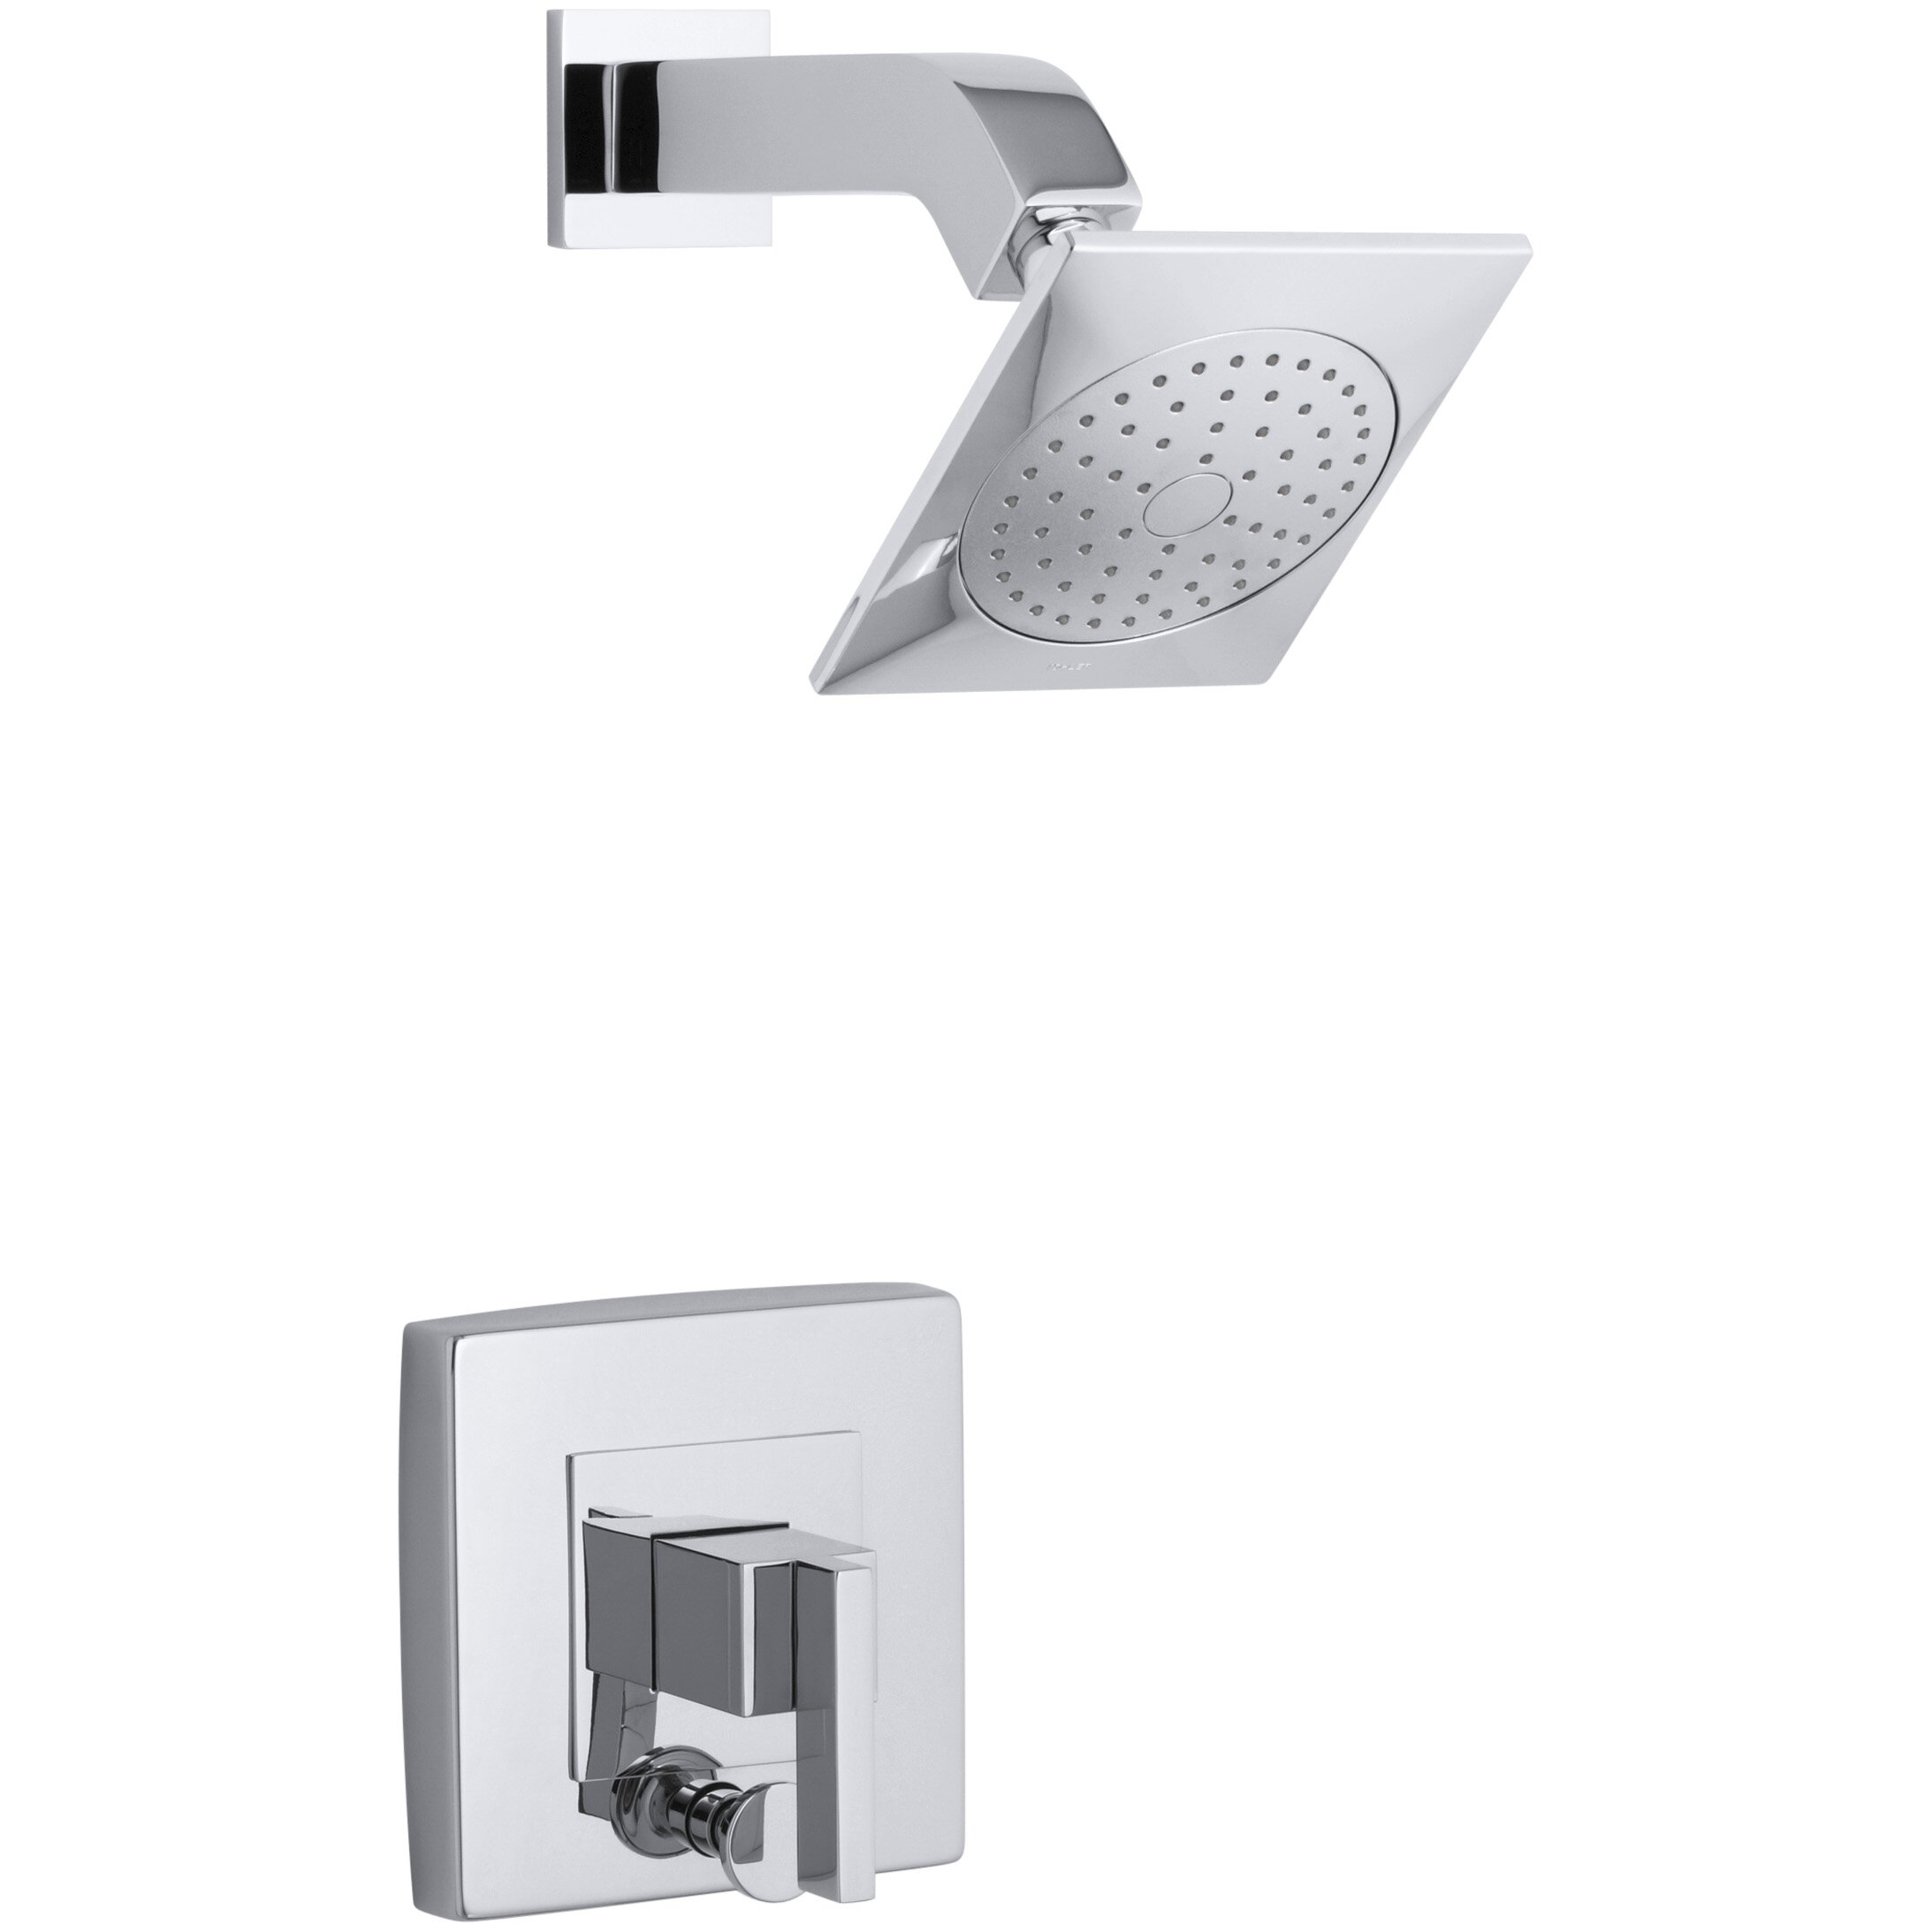 Kohler Loure Rite-Temp Shower Trim with Diverter & Reviews | Wayfair - Kohler Loure Rite-Temp Shower Trim with Diverter